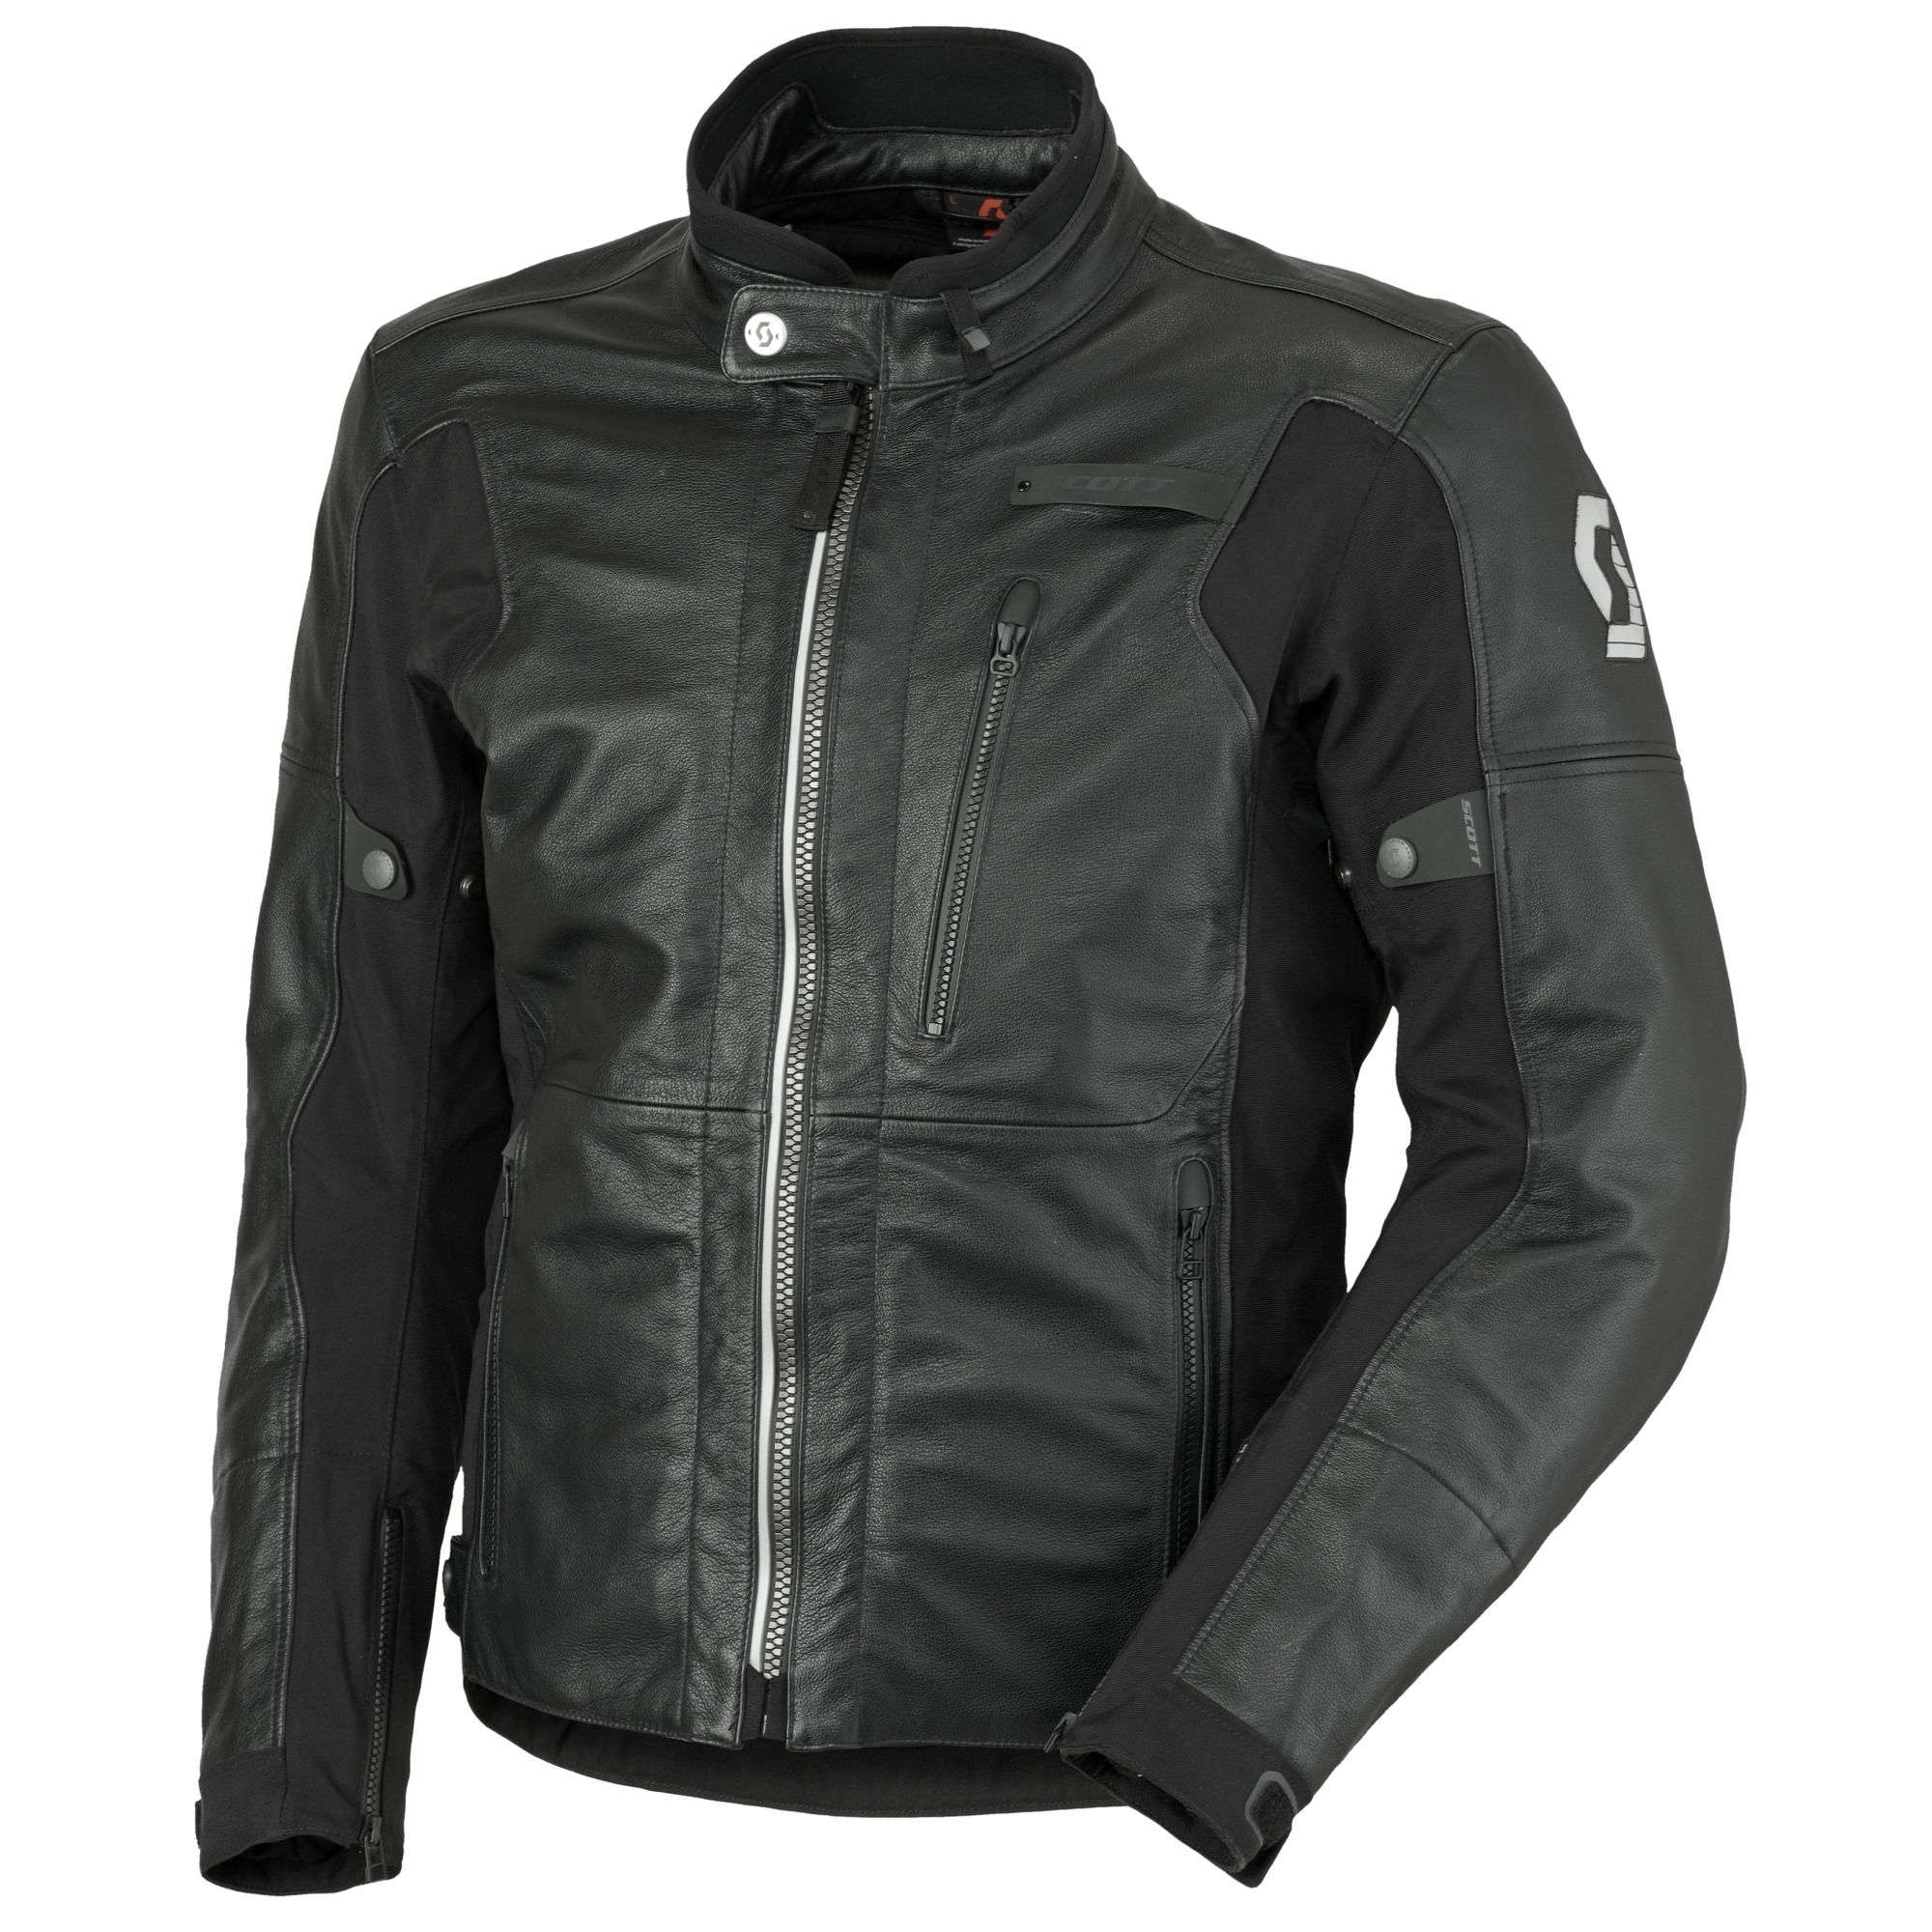 SCOTT Tourance Leather DP Jacket